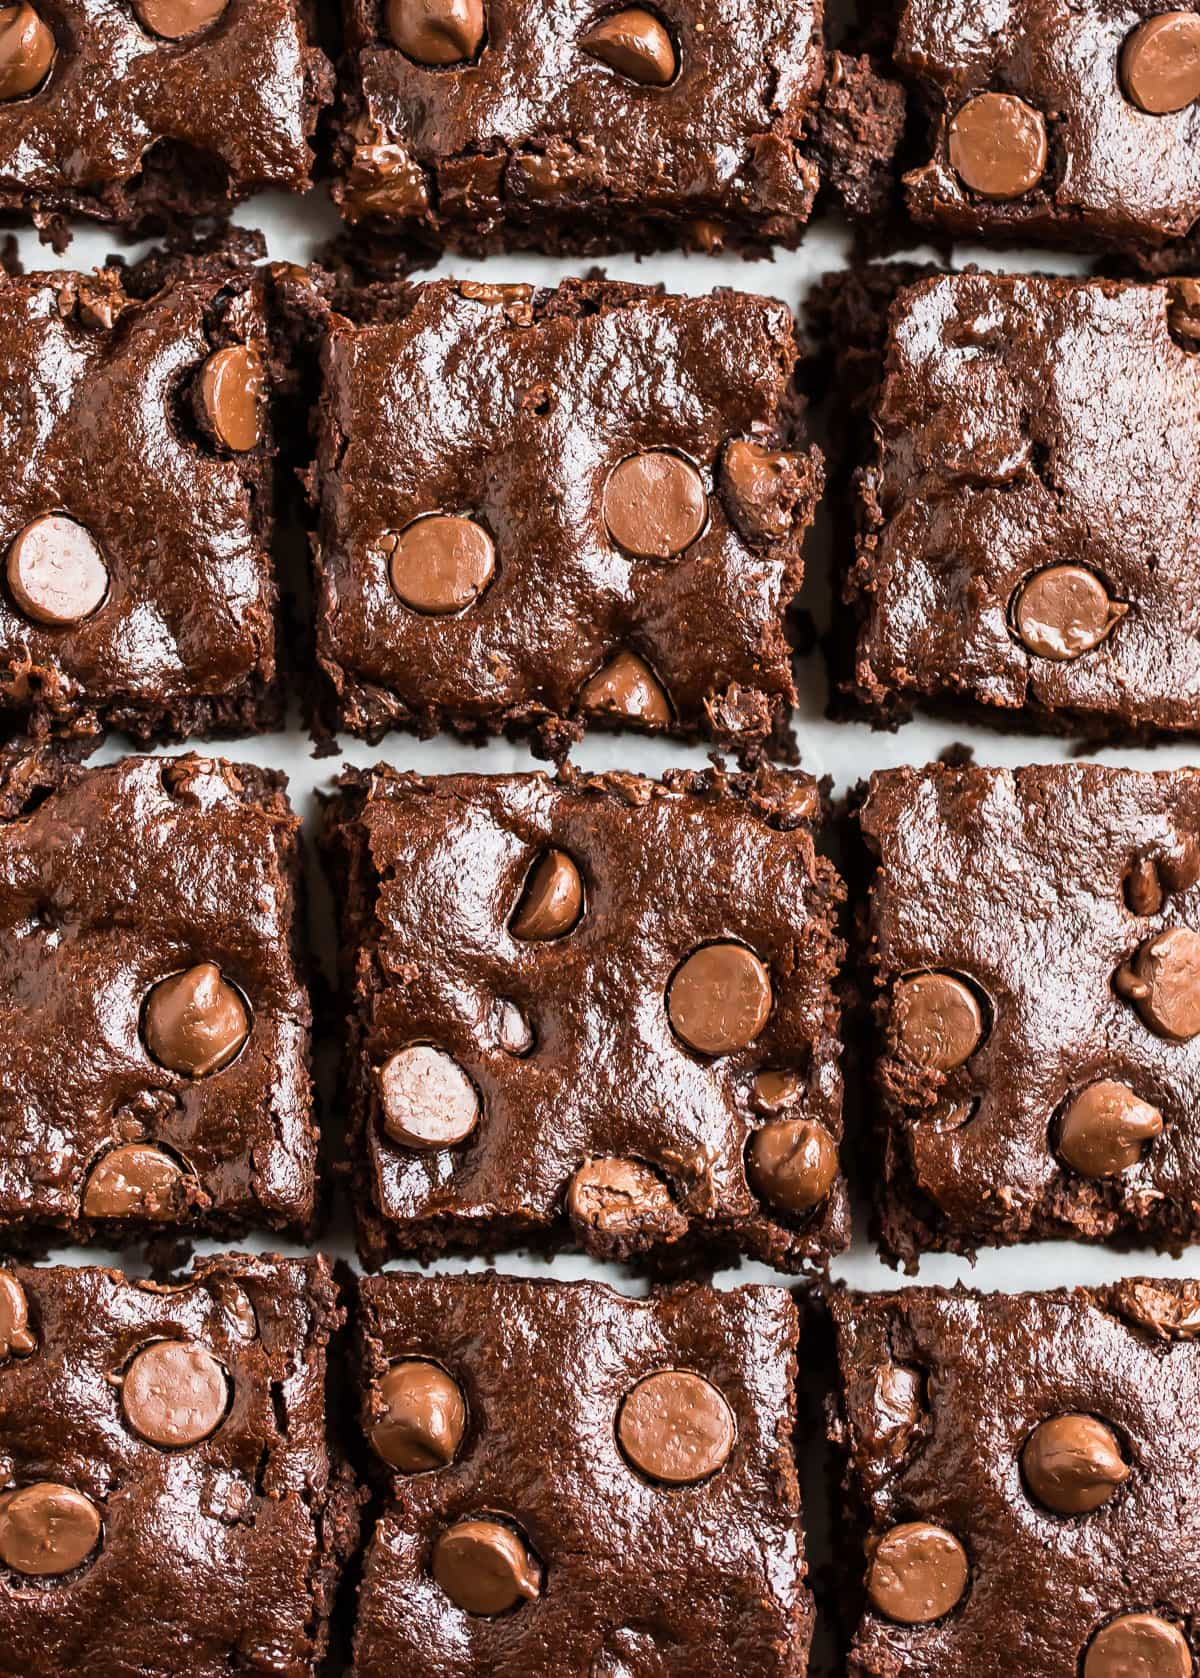 Chewy and moist chocolate vegan brownies with chocolate chips